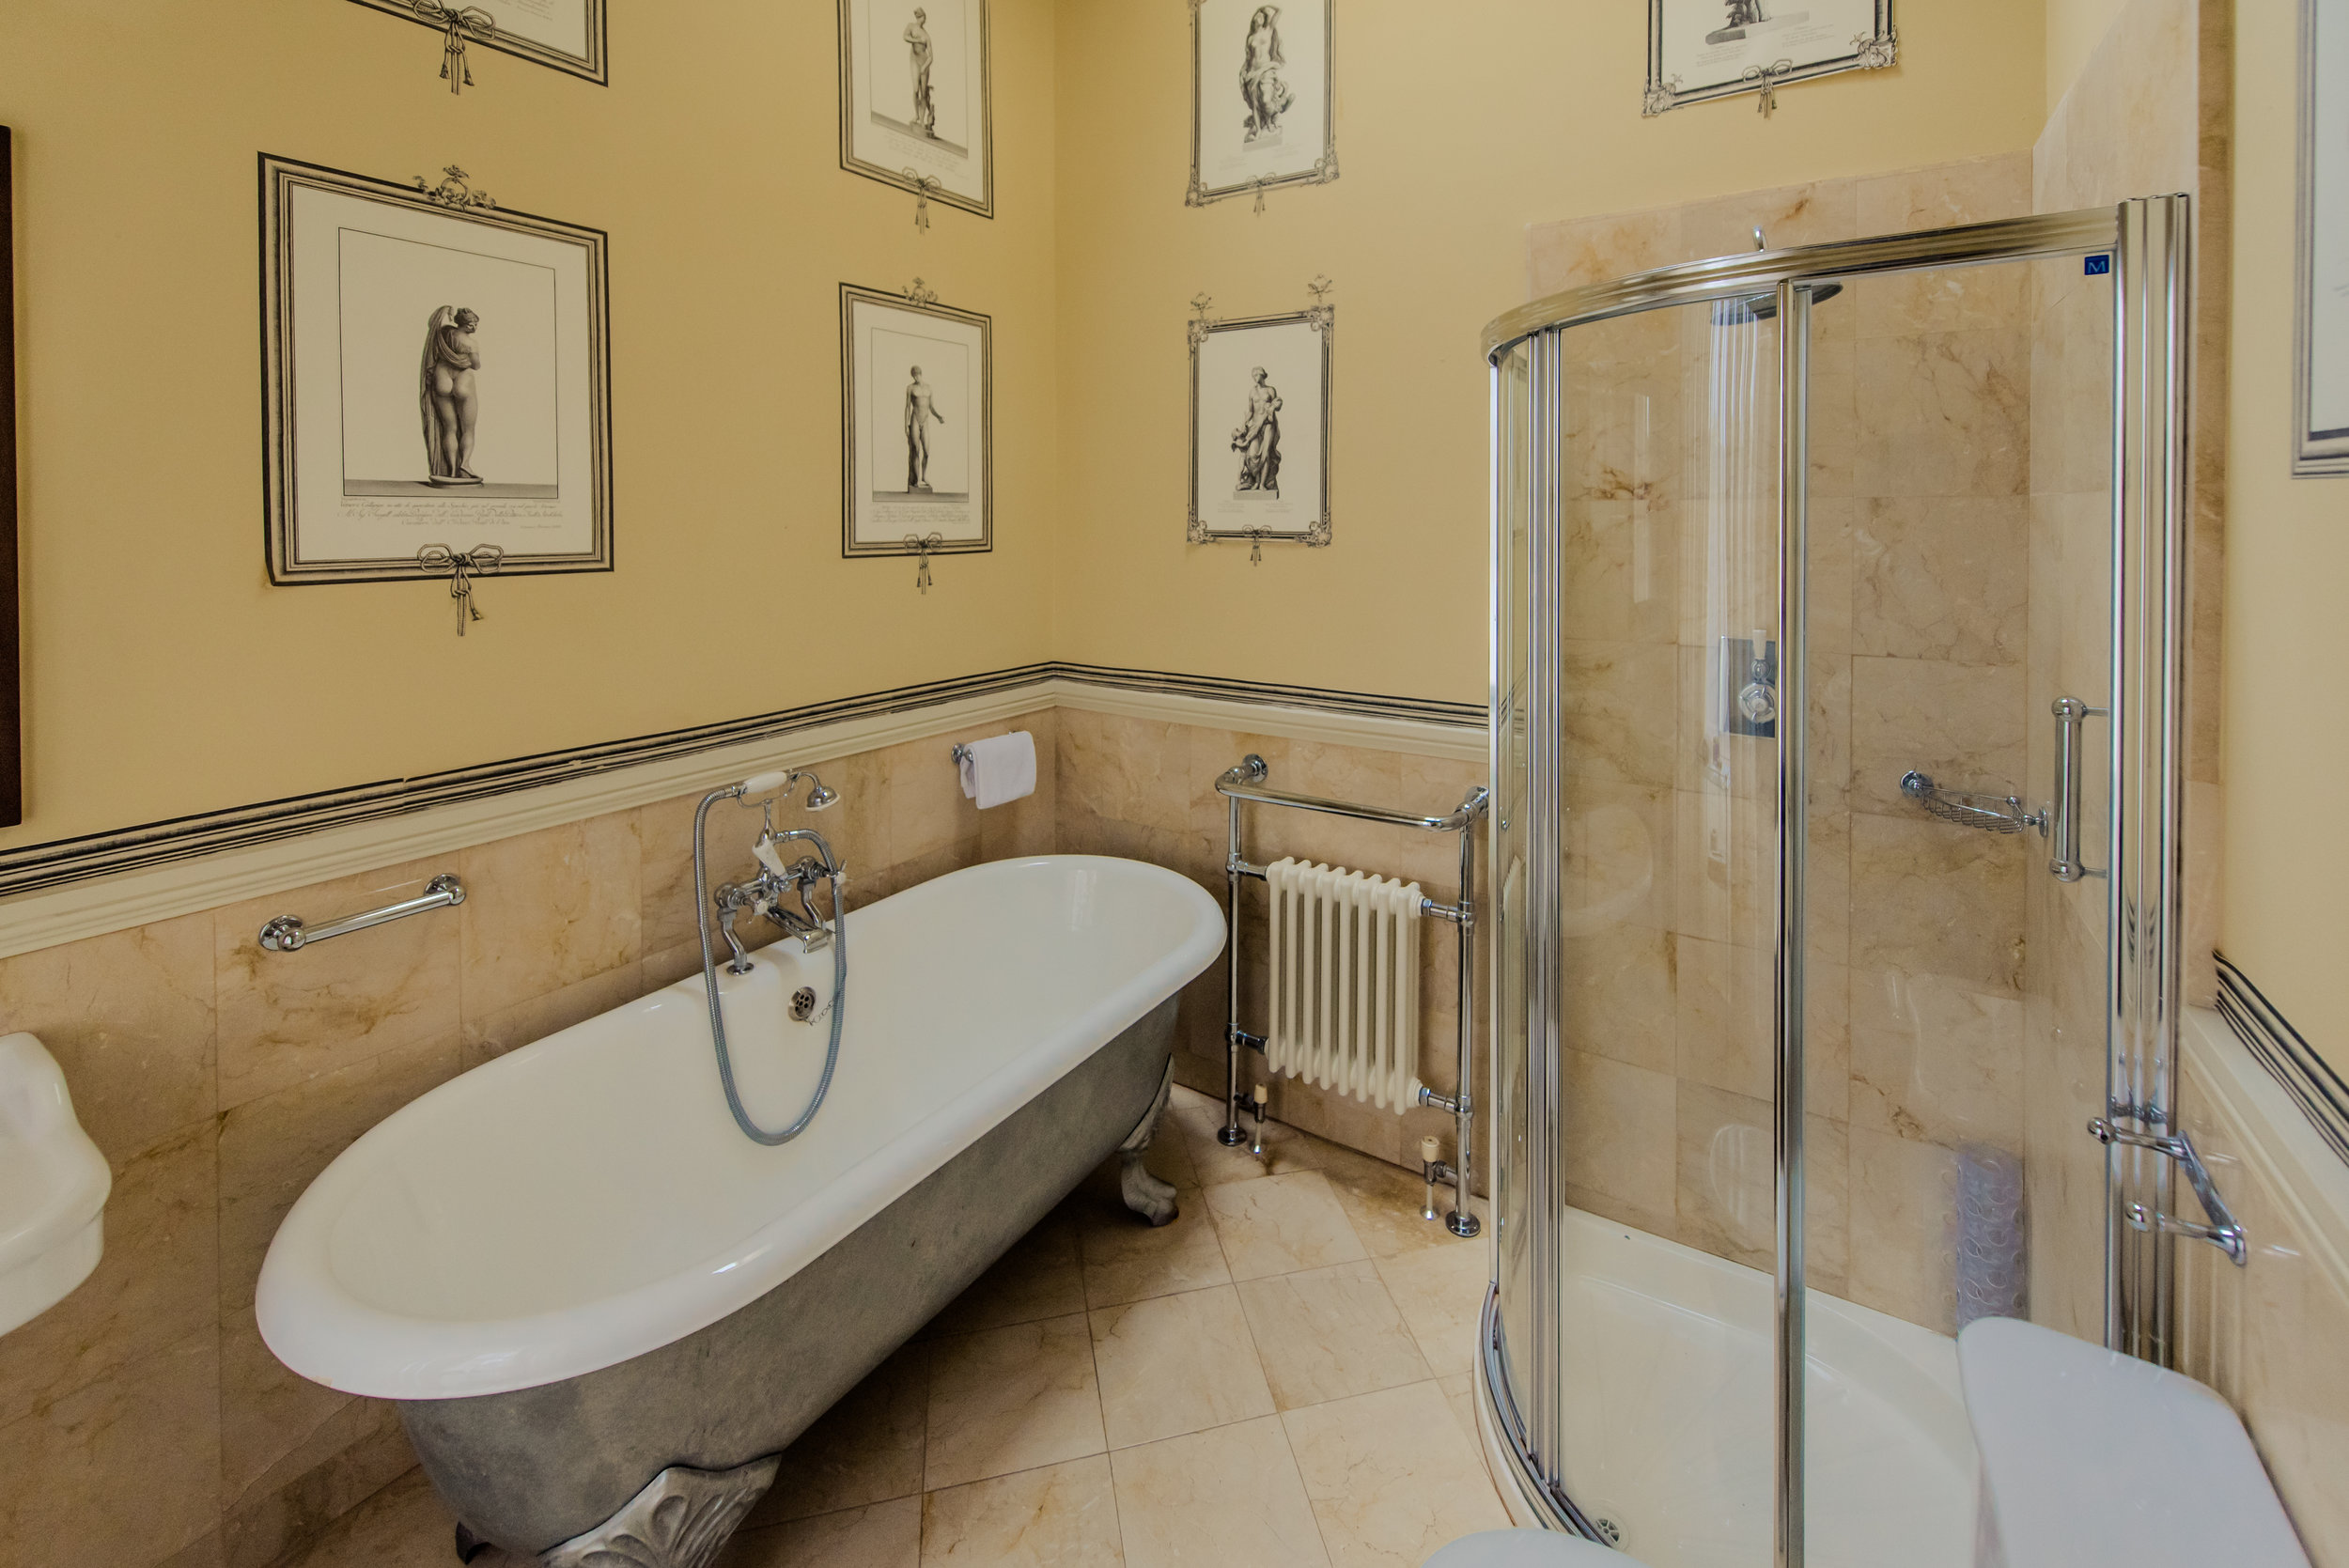 Tulfarris Hotel & Golf Resort Manor House bathroom with beautiful wallpaper and glass shower.jpg